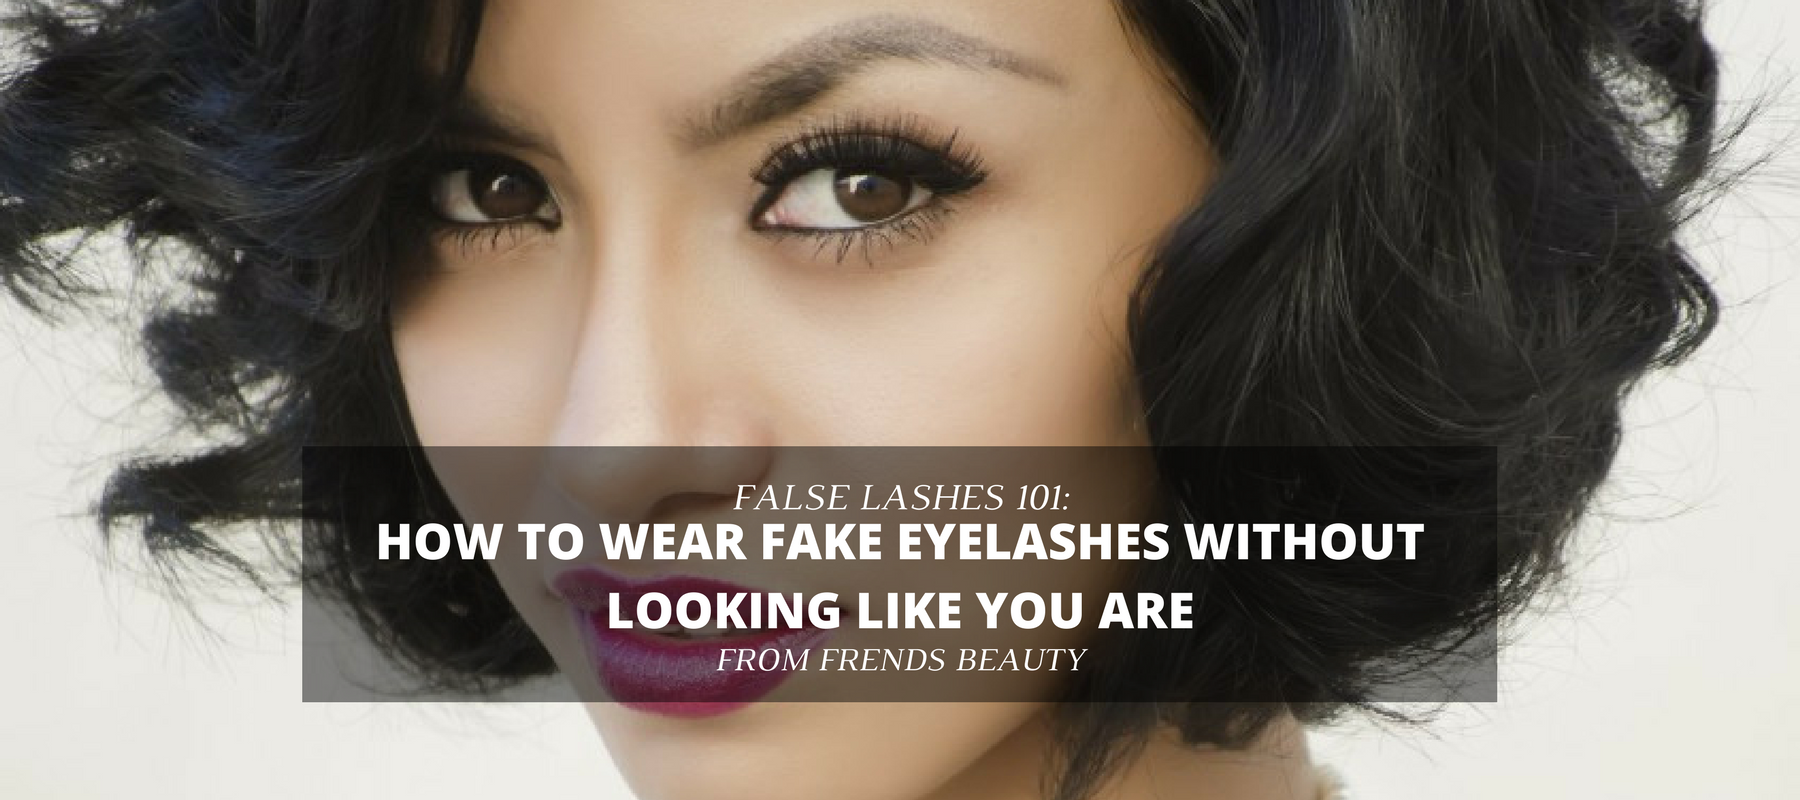 How To Wear Fake Eyelashes Without Looking Like You Are Frends